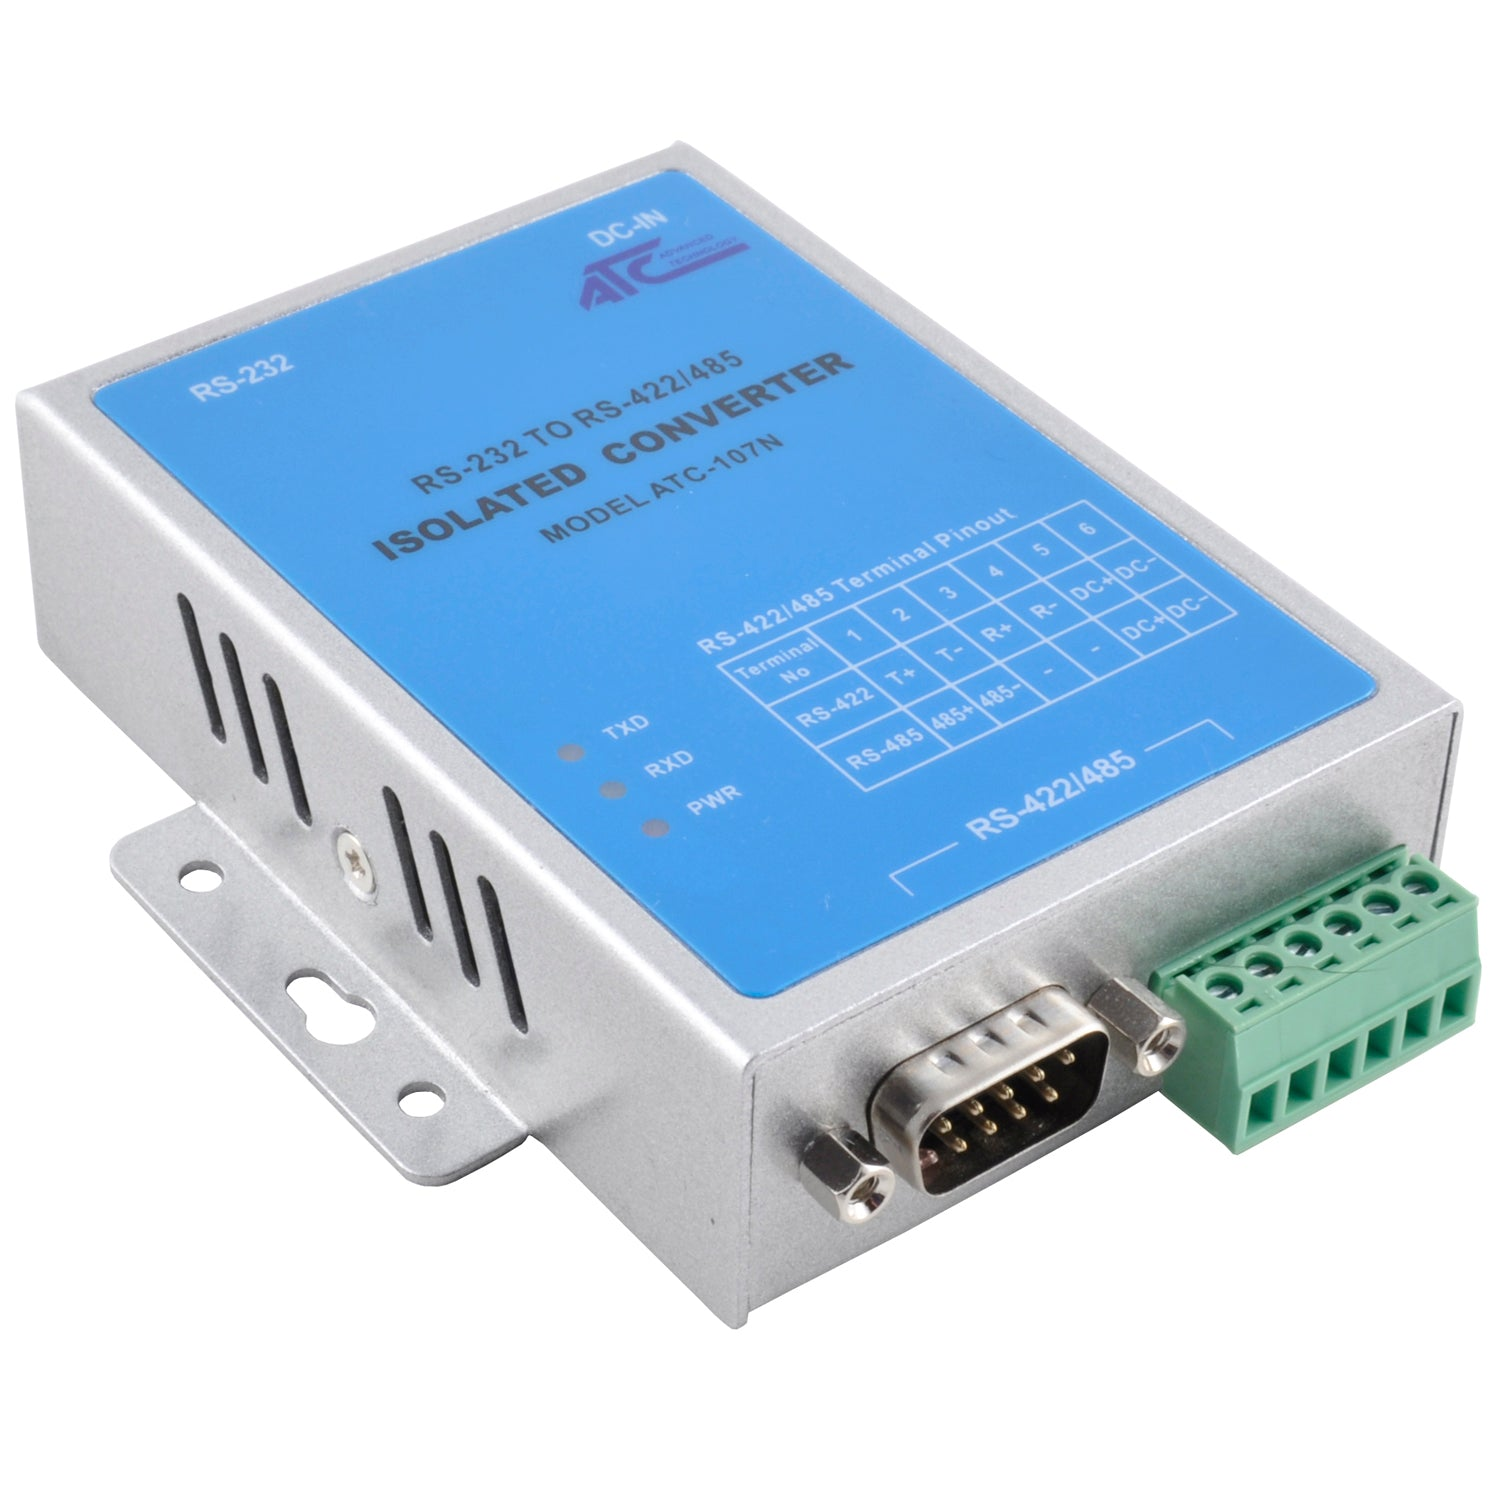 Rs485 To Rs232 Converter Atc 107n Grid Connect